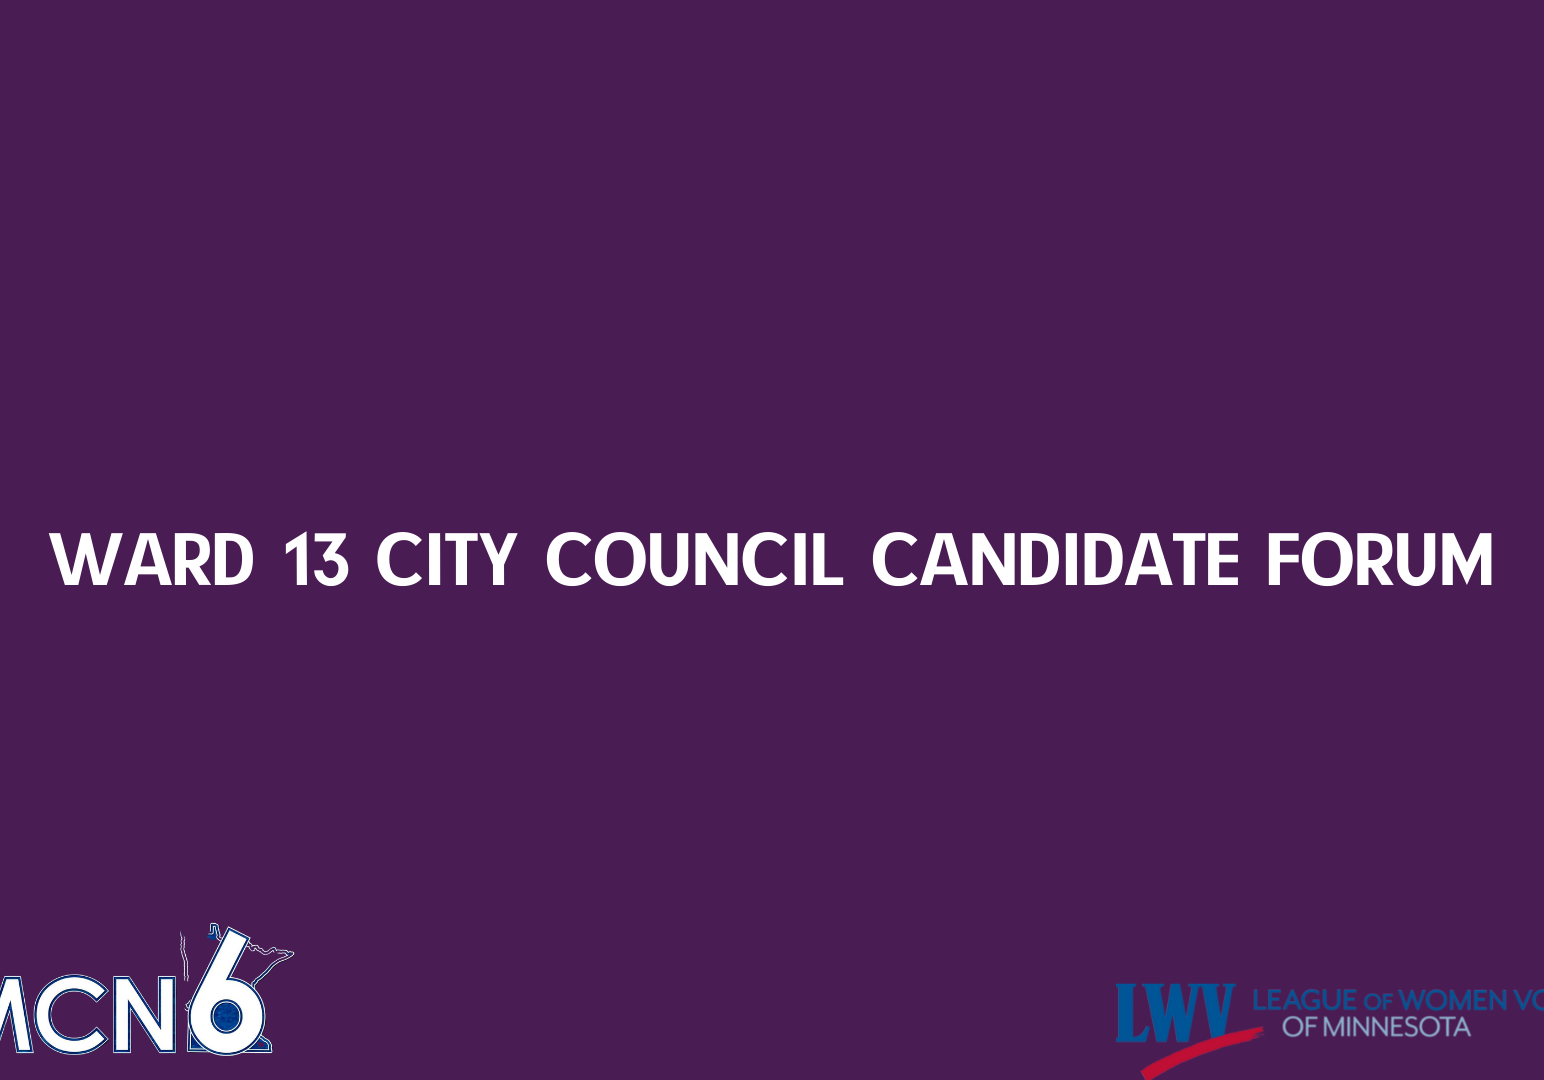 Ward 13 City Council Candidate Forum